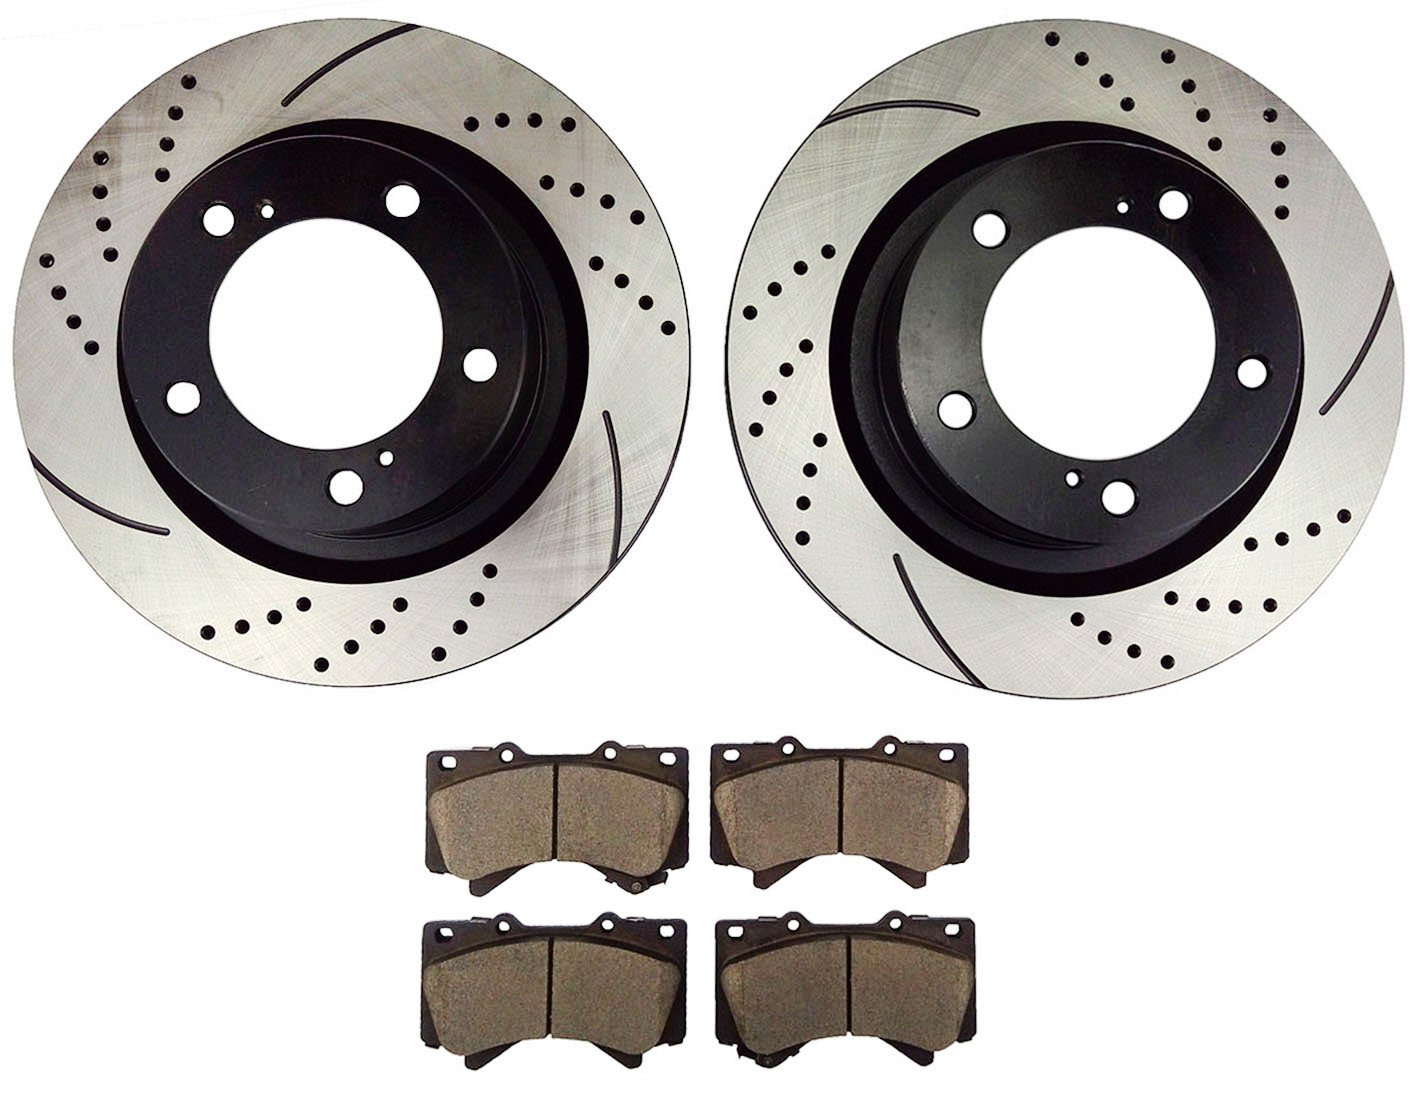 Atmansta QPD10002 Front Slotted /& Drilled Rotors and Ceramic Pads Brake Kit for Toyota Land Cruiser Sequoia Tundra